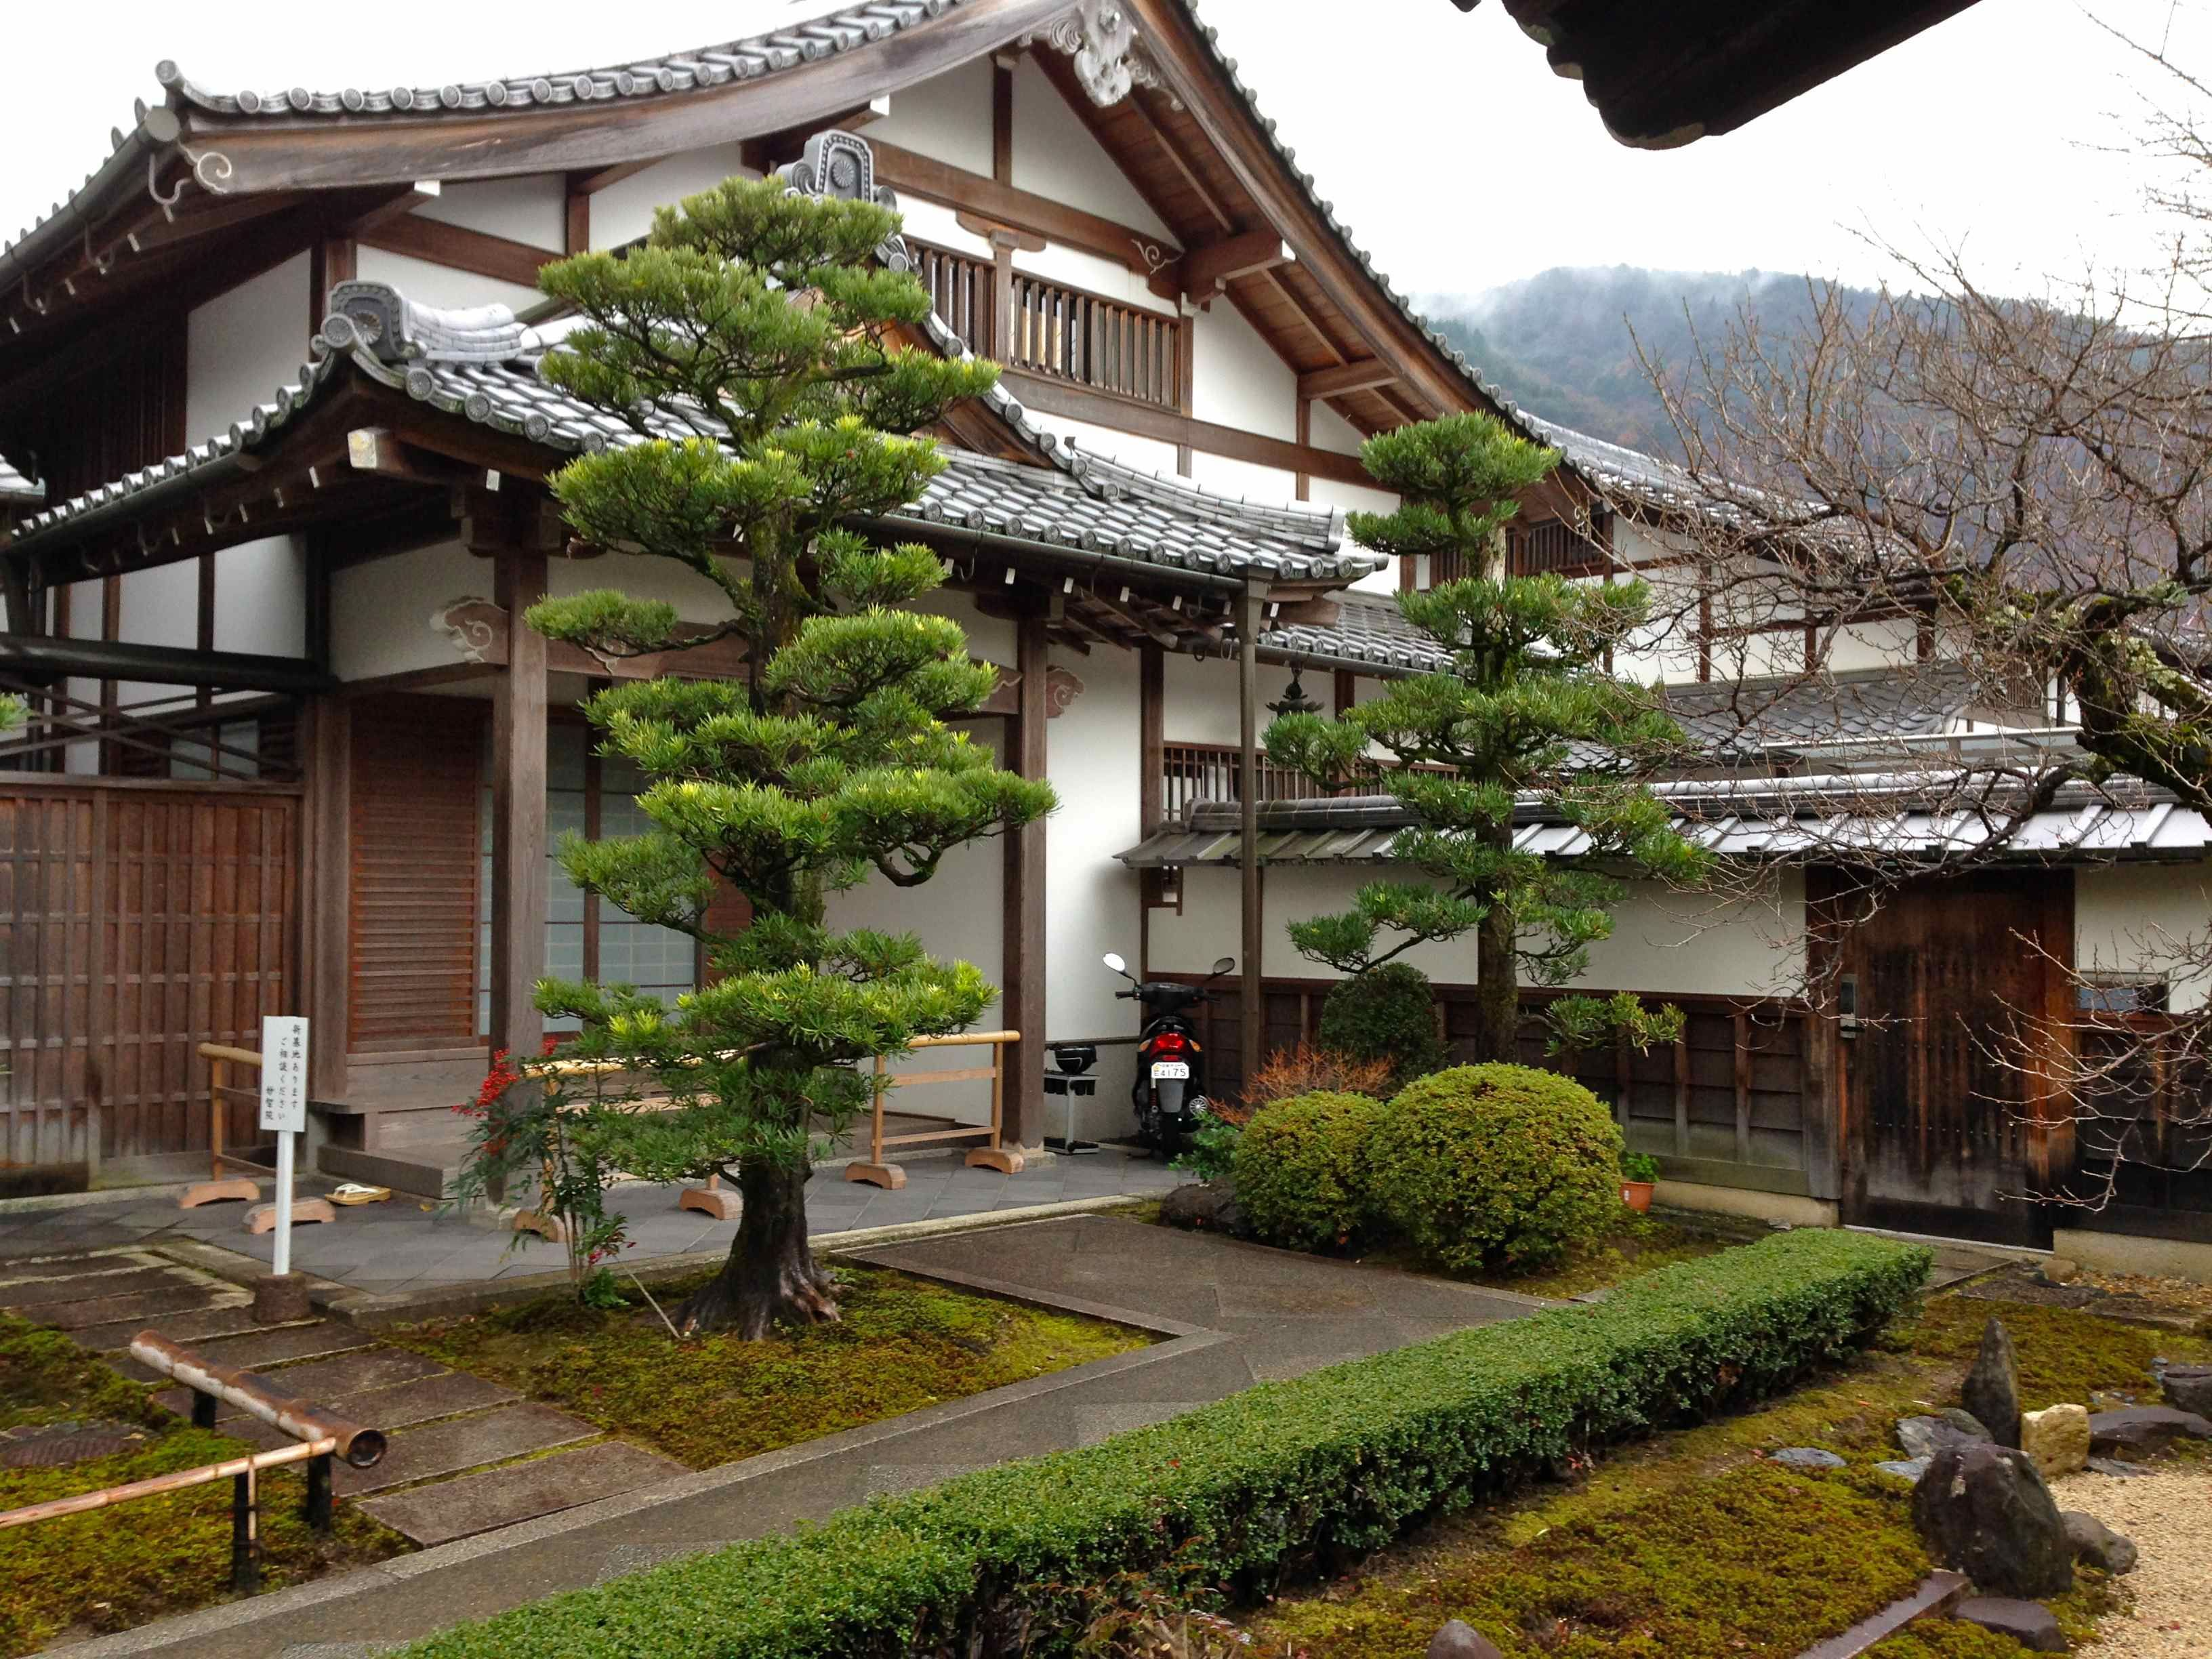 Guest Houses · Japanese Garden Kyoto Arashiyama Great Ideas